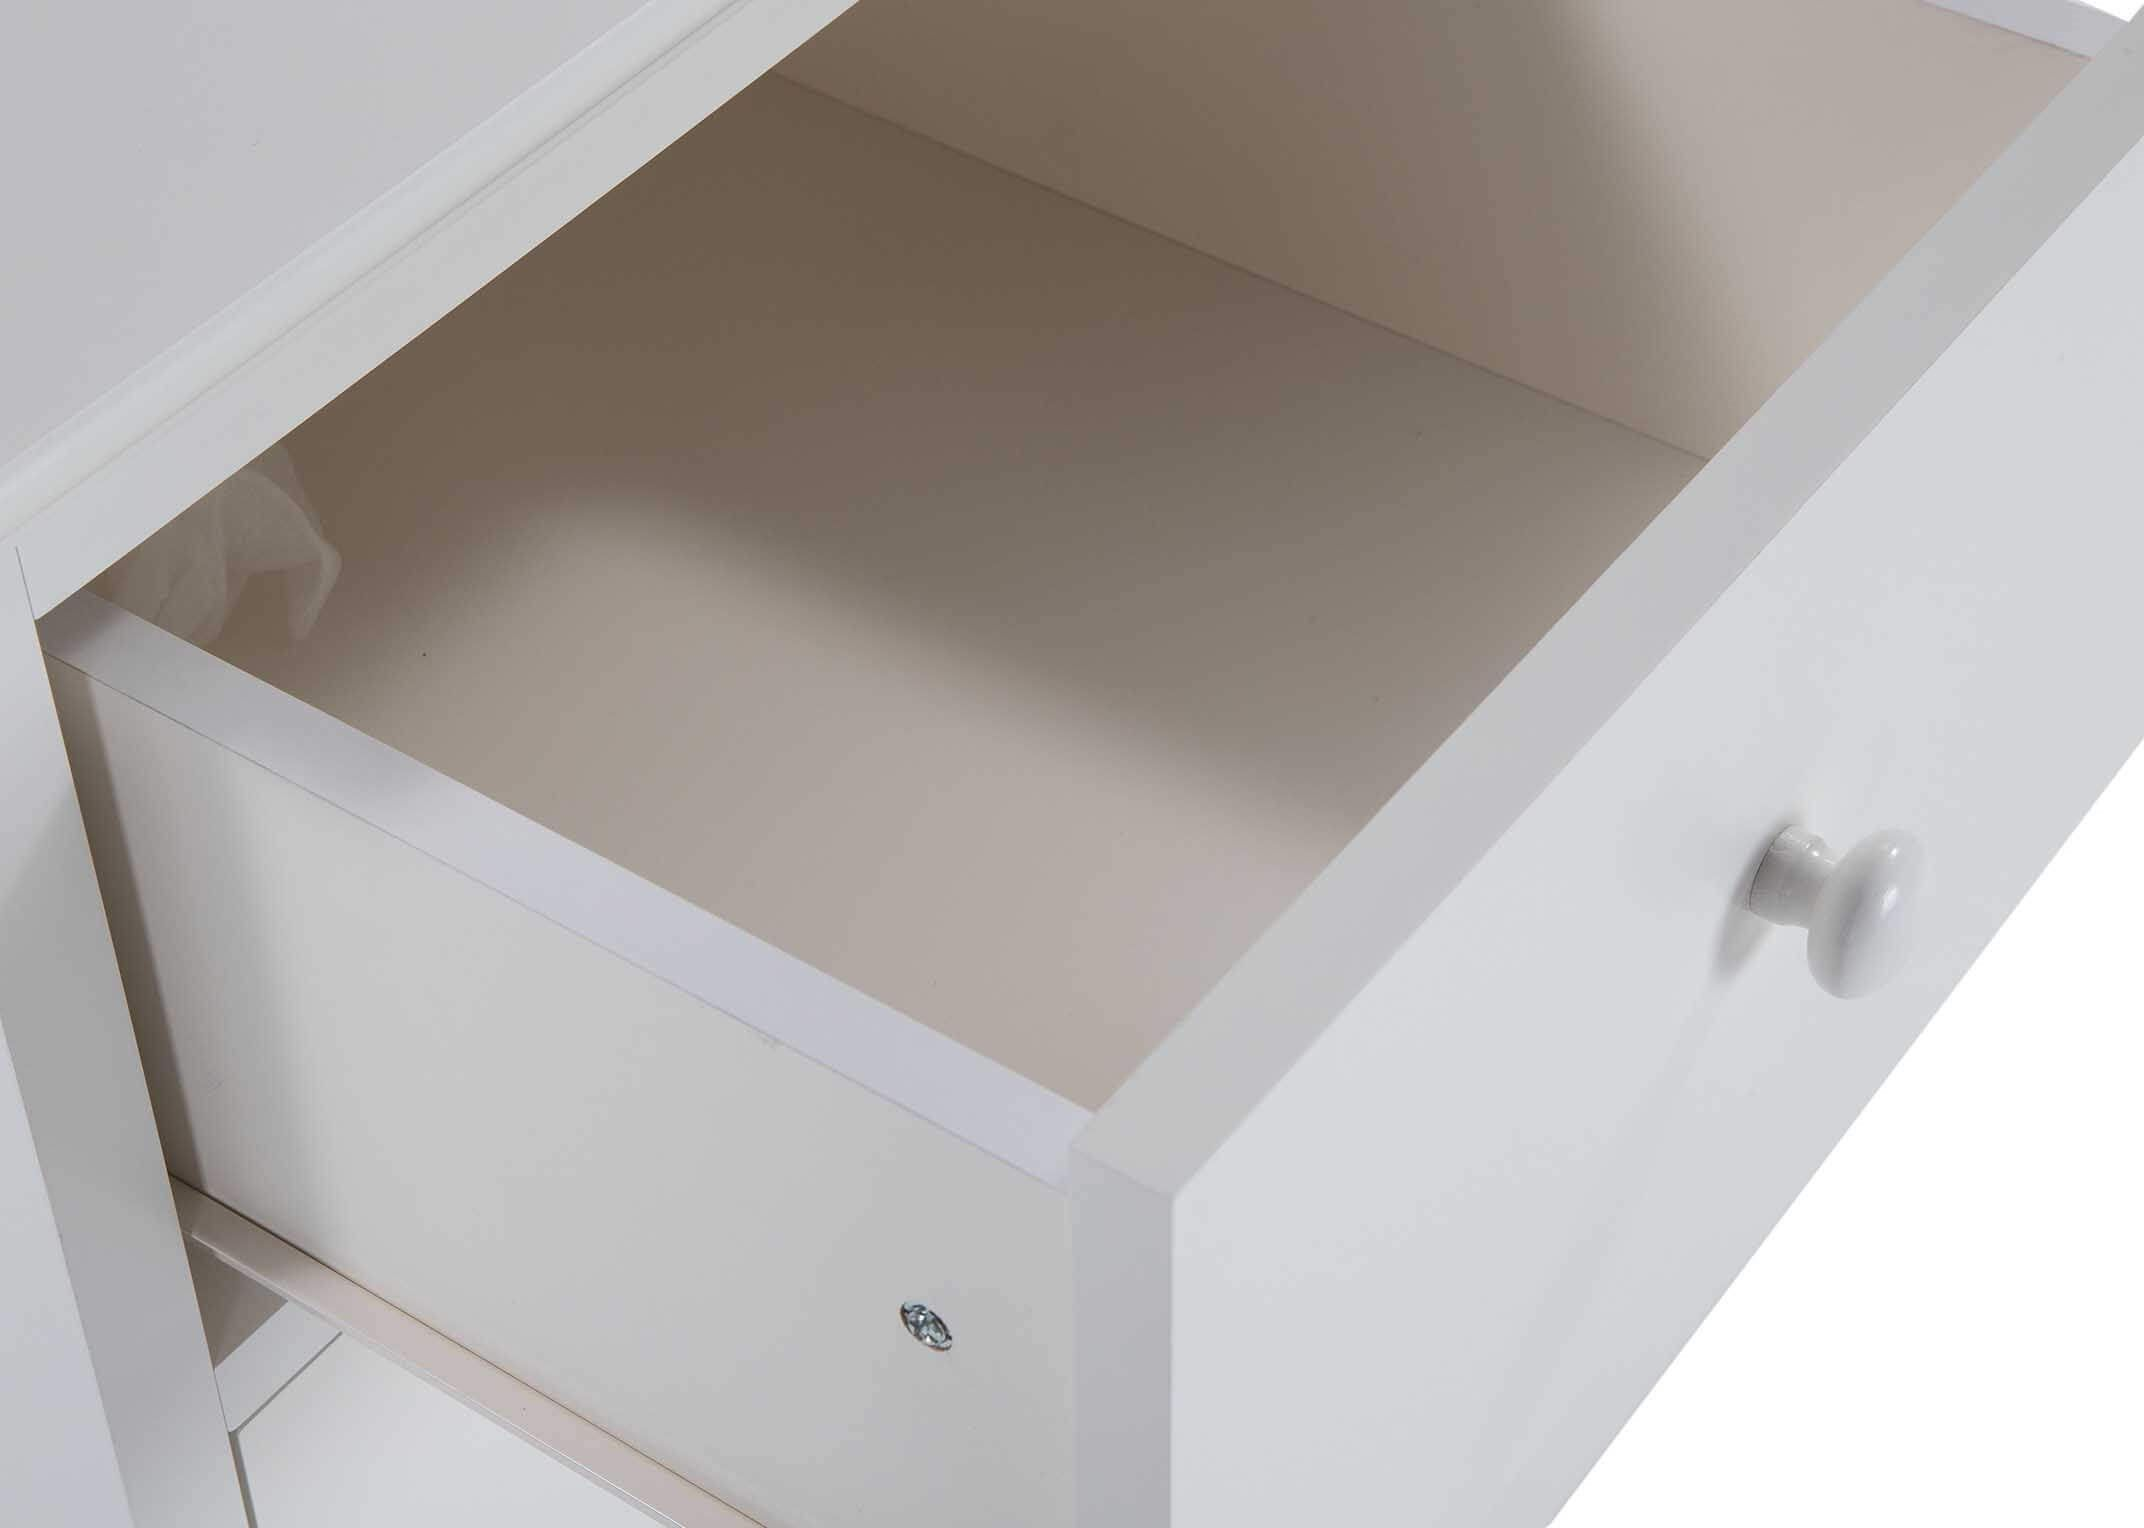 ASHLEY (GREY or WHITE) WIDE CHEST - DRAWER RUNNER DETAIL